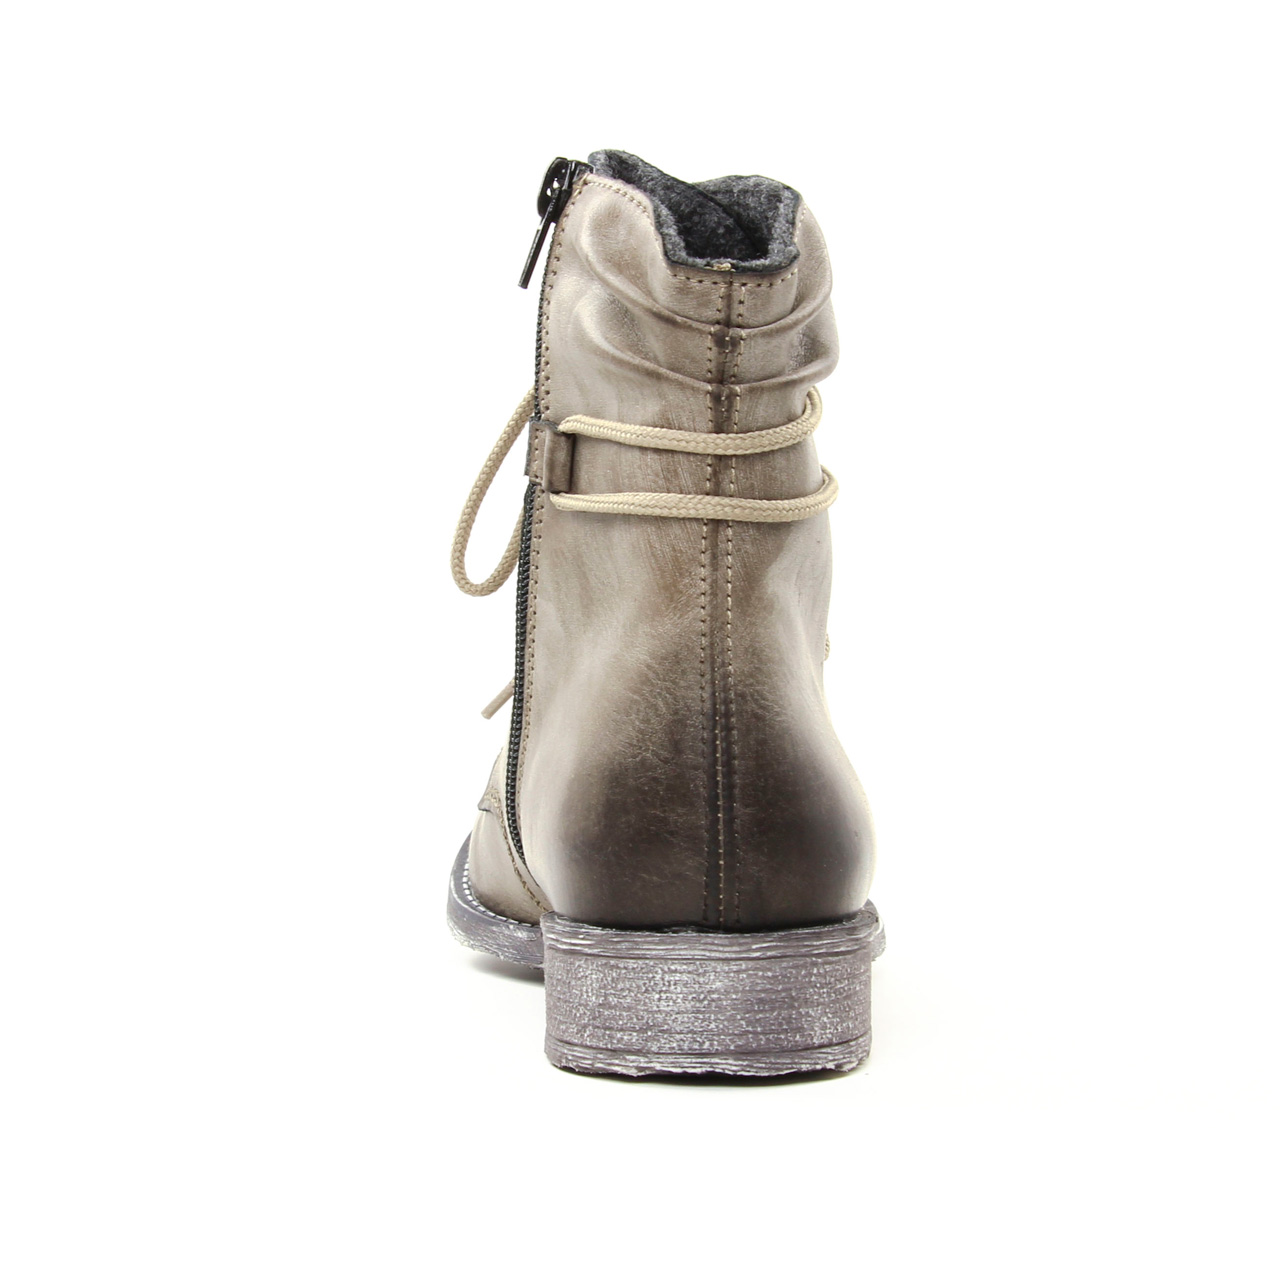 f9bd2f6c50b boots beige taupe mode femme automne hiver vue 7